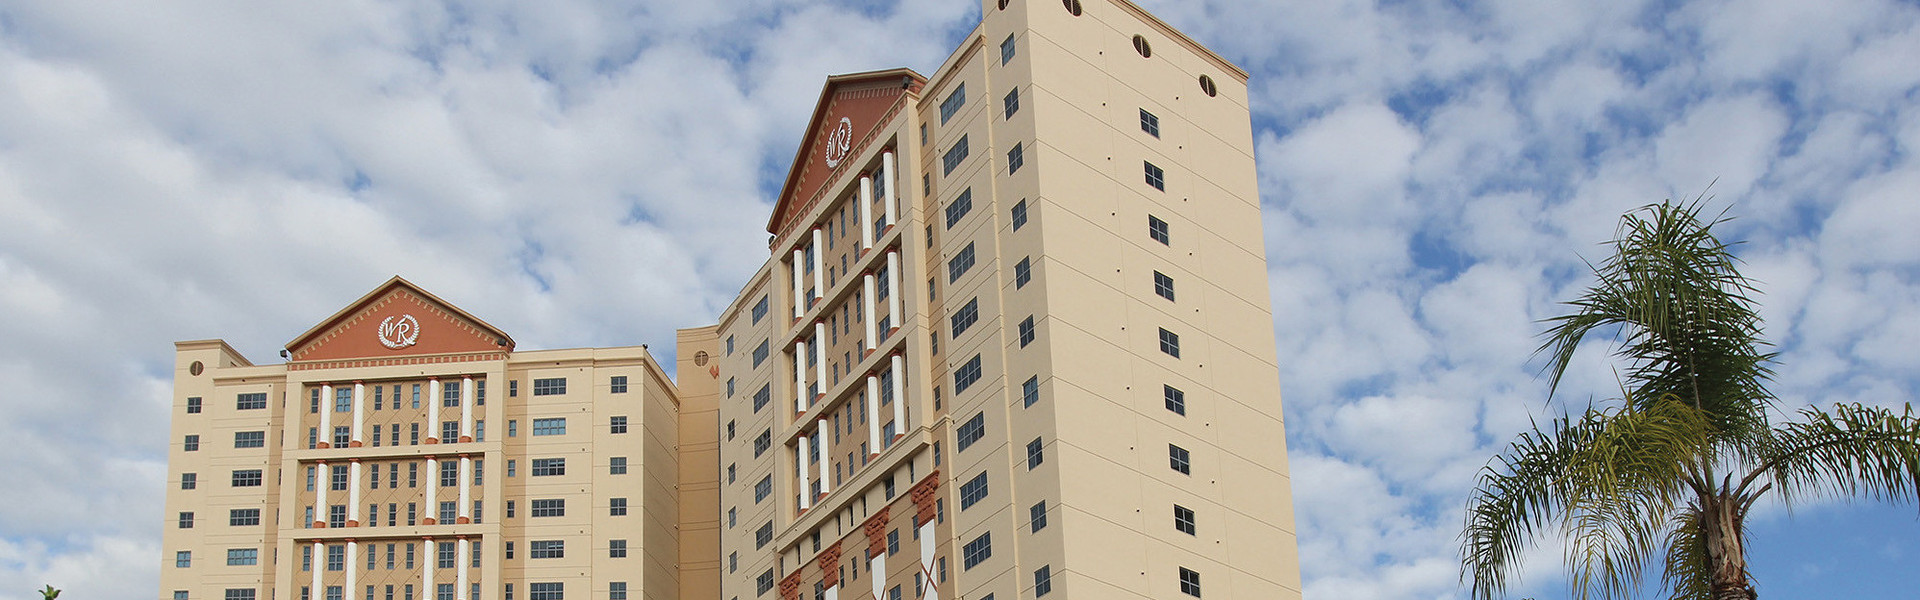 Westgate Palace Resort Reviews | Reviews and Ratings For Resorts Near International Drive Orlando, FL | Westgate Palace Orlando Reviews Near 32819